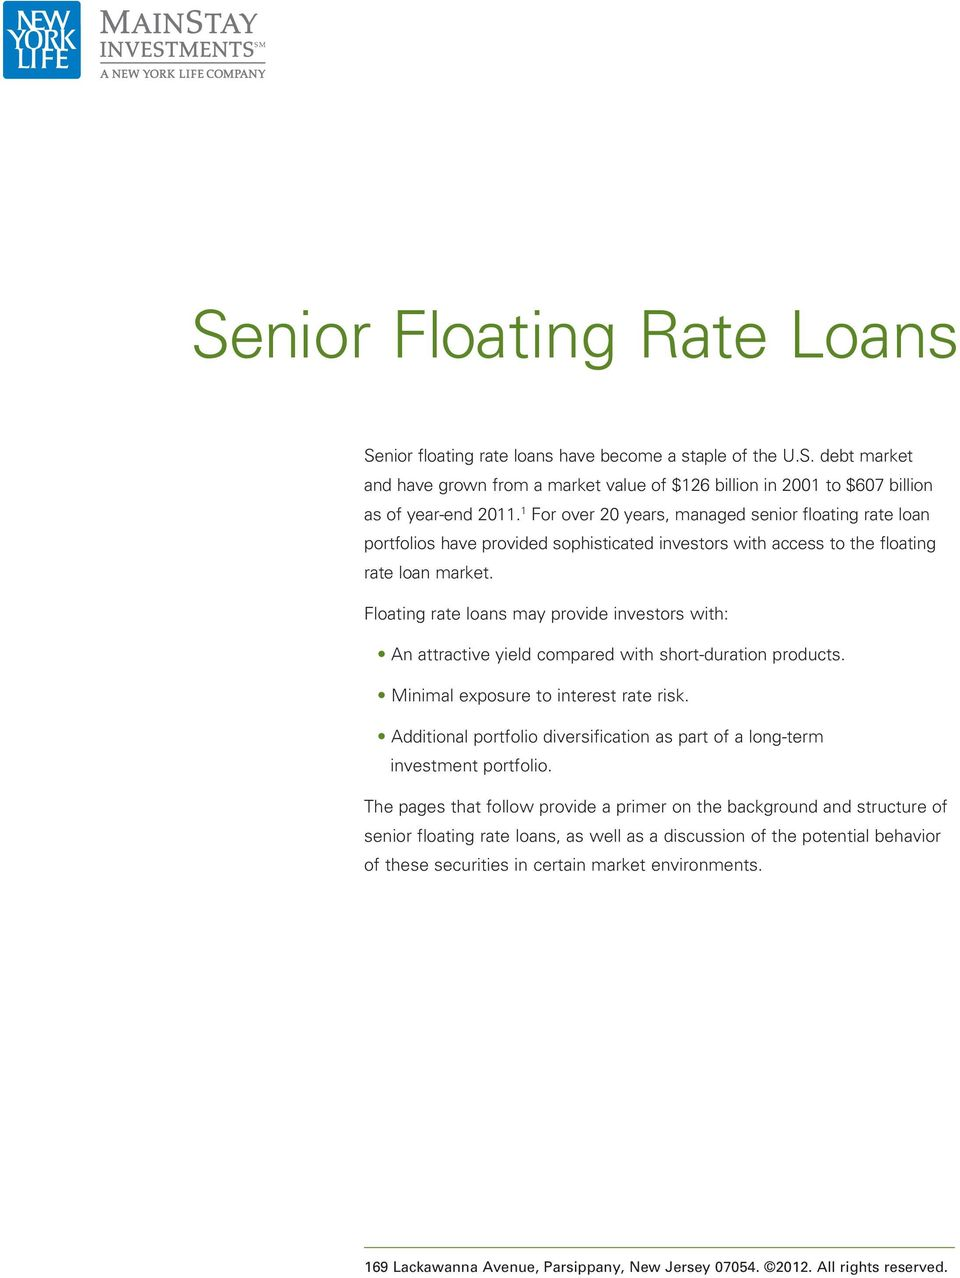 Floating rate loans may provide investors with: An attractive yield compared with short-duration products. Minimal exposure to interest rate risk.